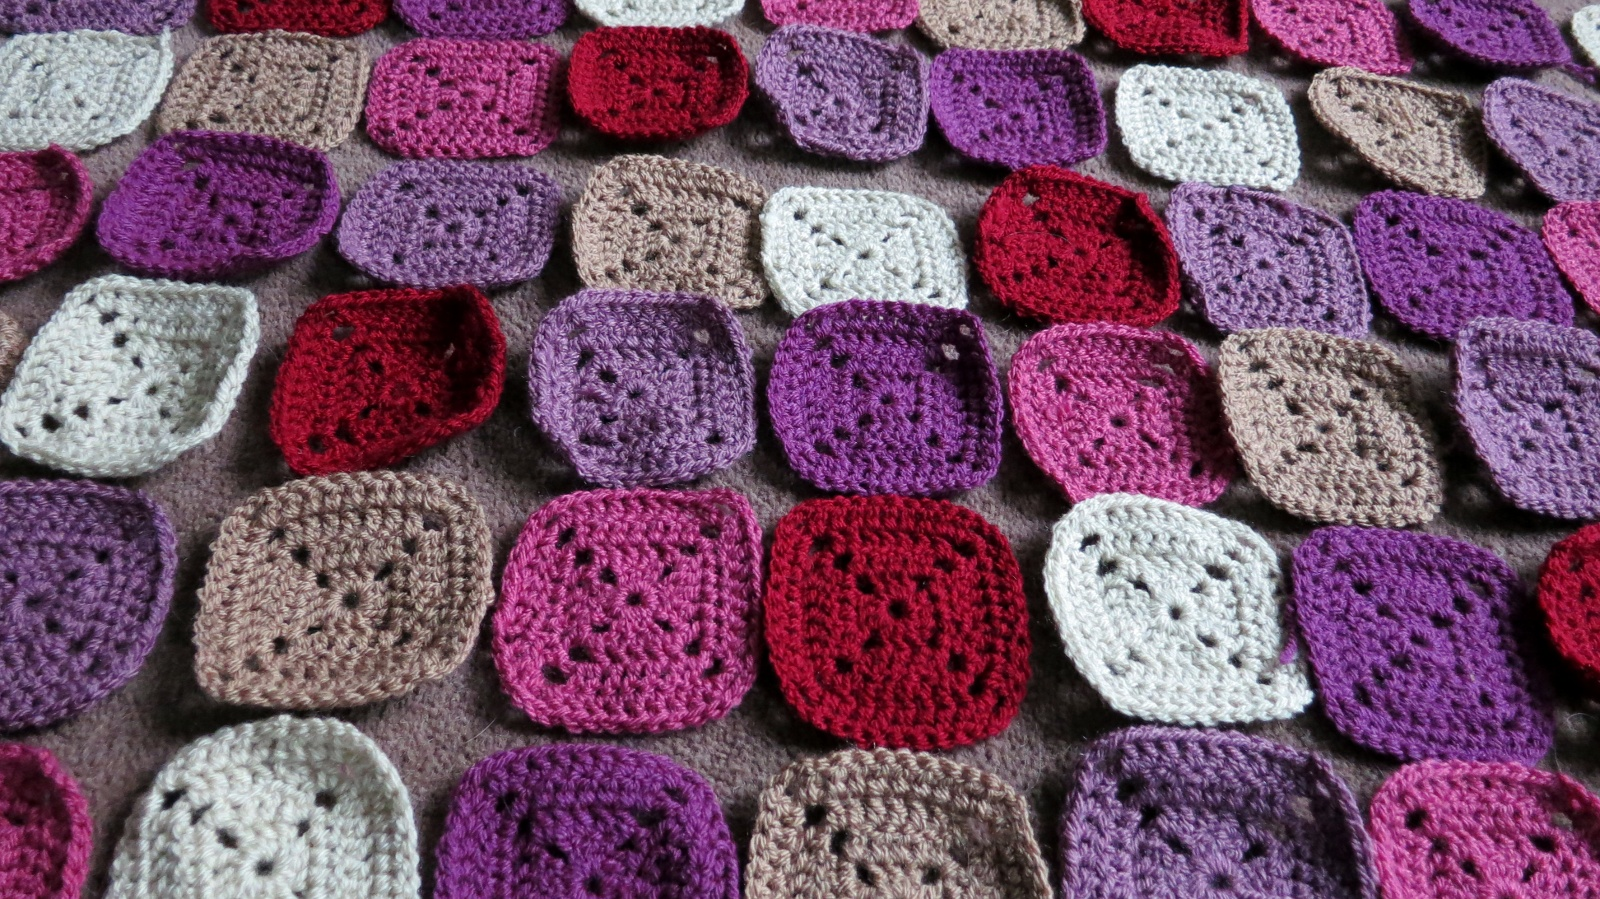 Crochet Stitches Joining Squares : ... square blanket: one colour per square like Heather?s Elmer blanket